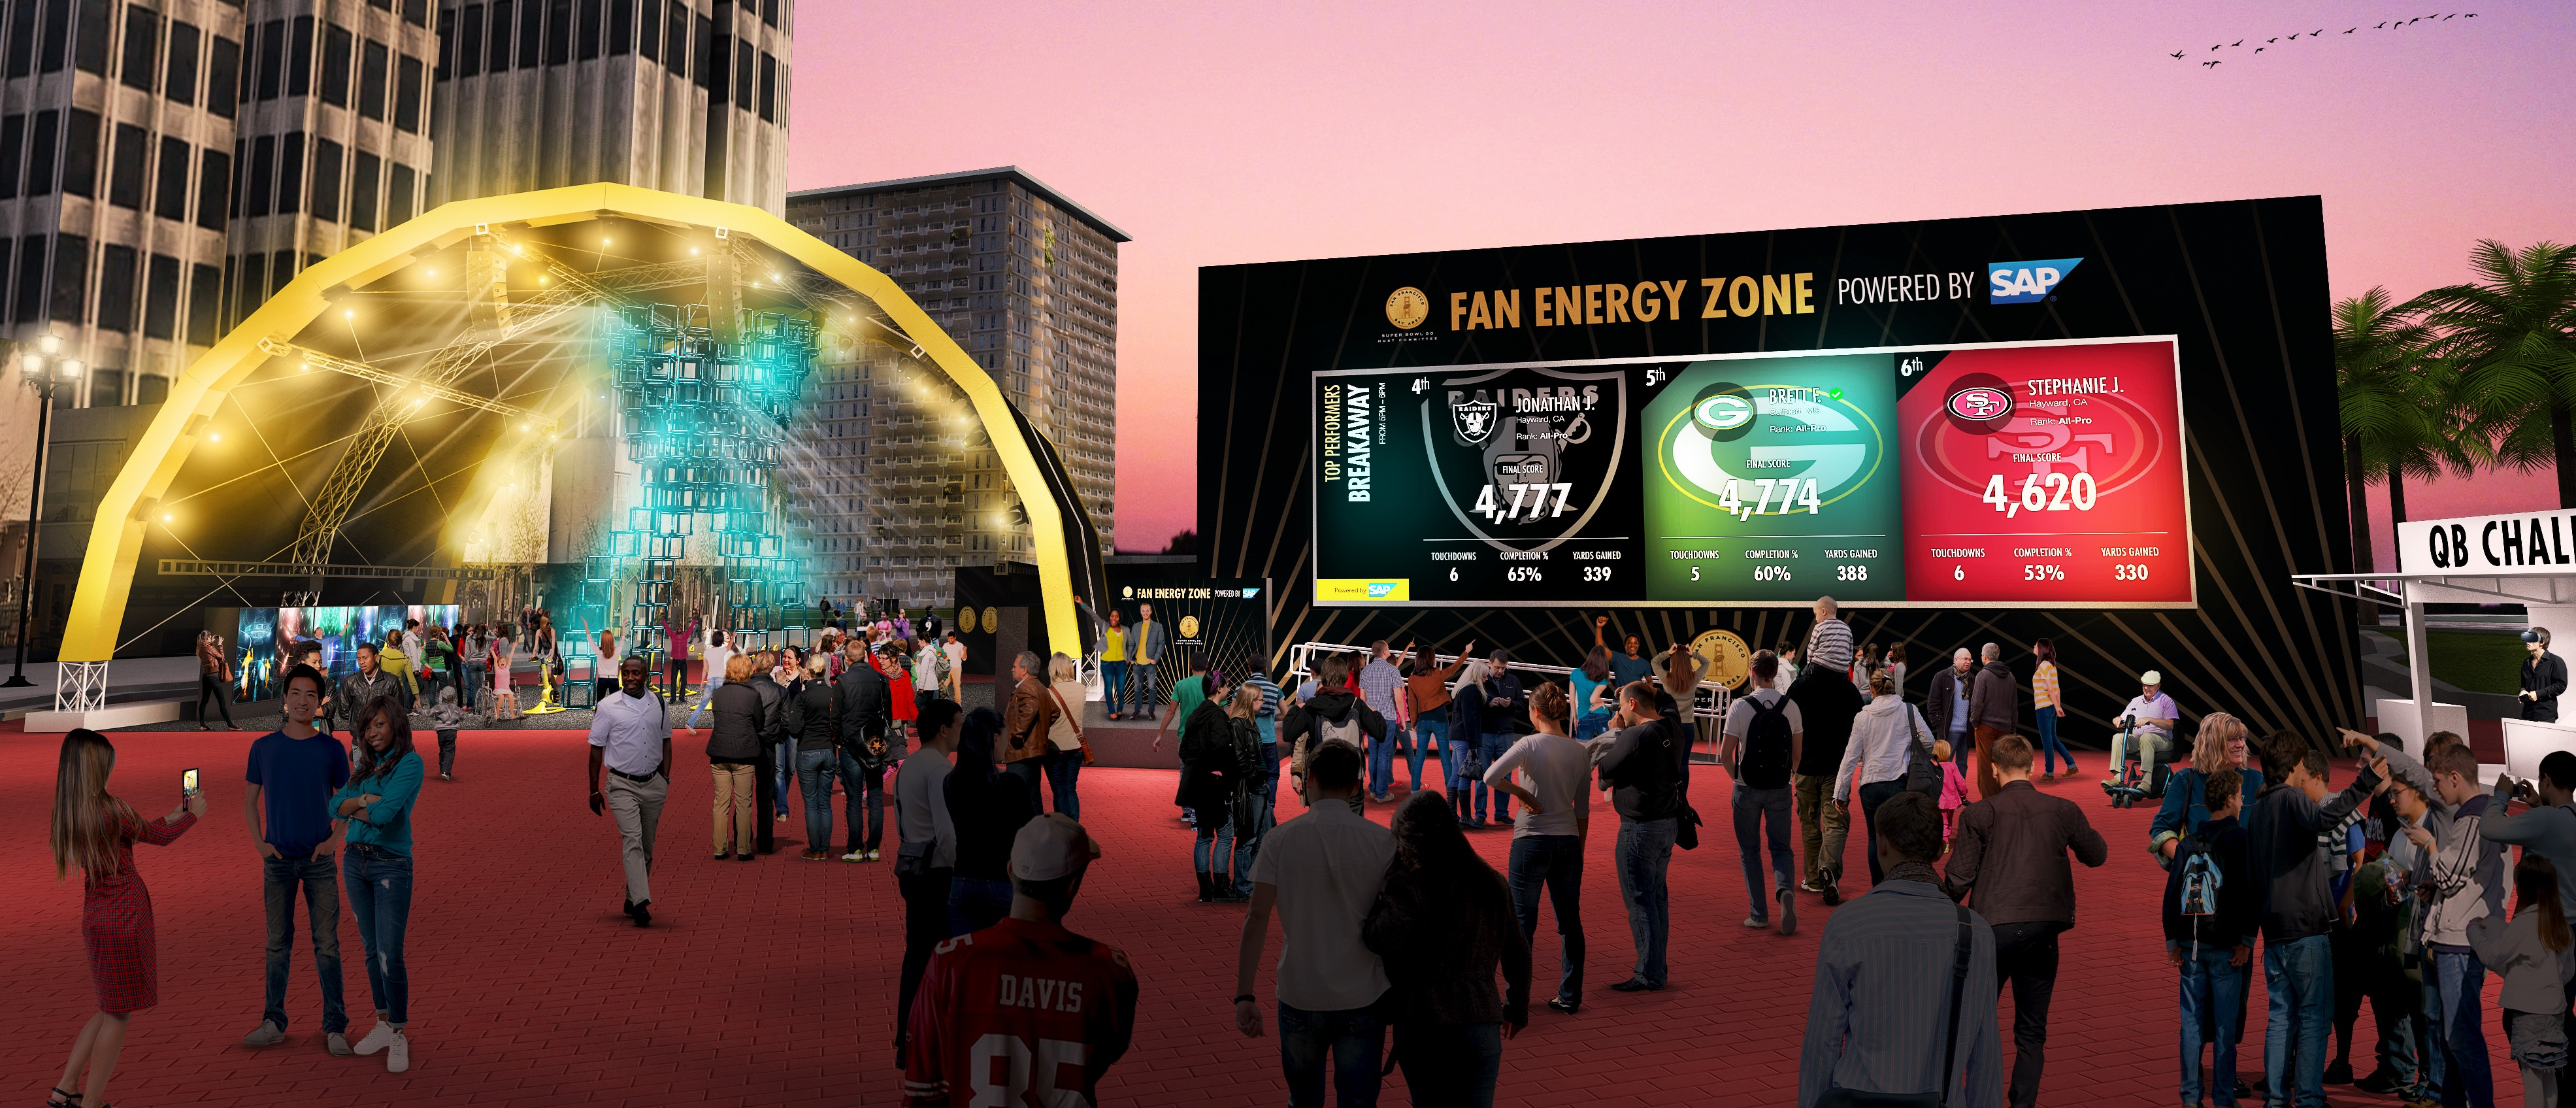 Fan Energy Zone[6].jpg